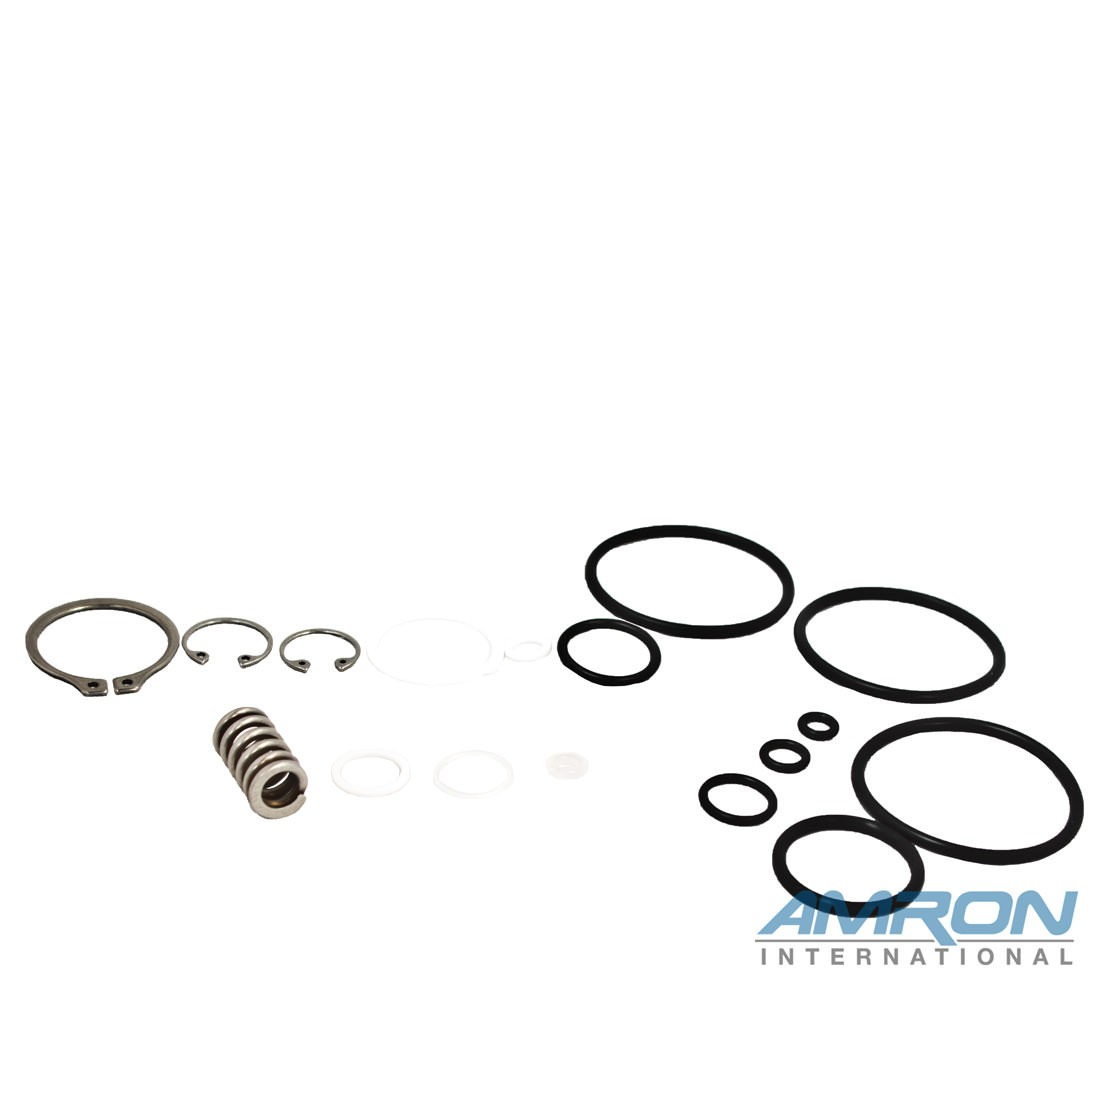 Tescom Repair Kit for 44-4000 Series Regulator